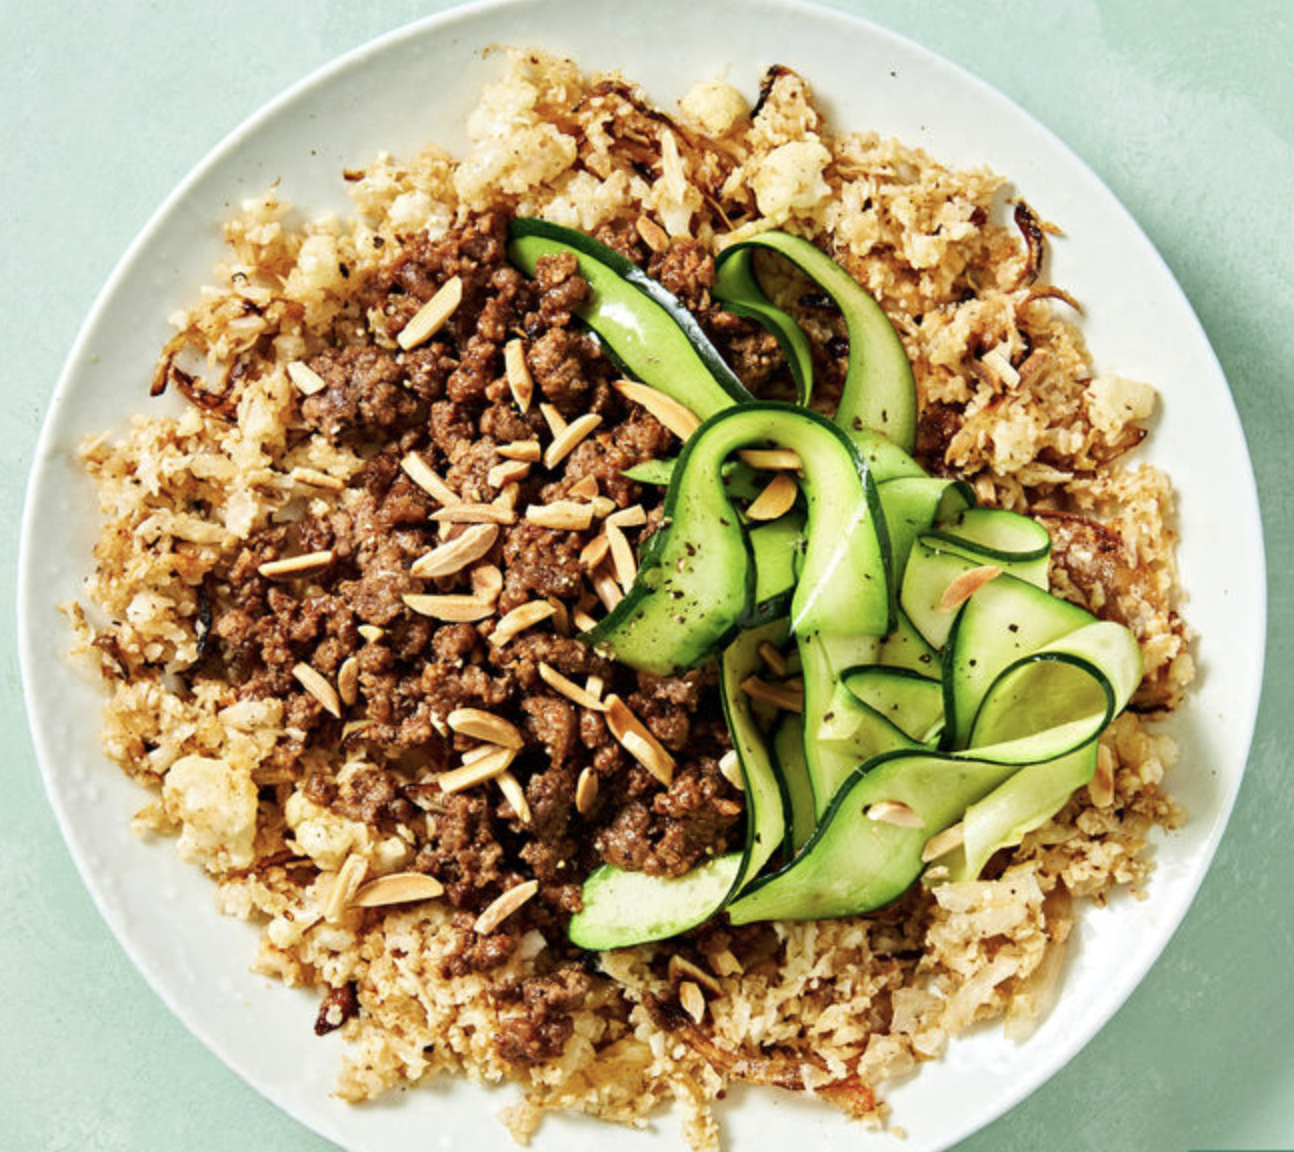 Reduced-Carb Middle Eastern Lamb with Cauliflower 'Rice' and Almonds